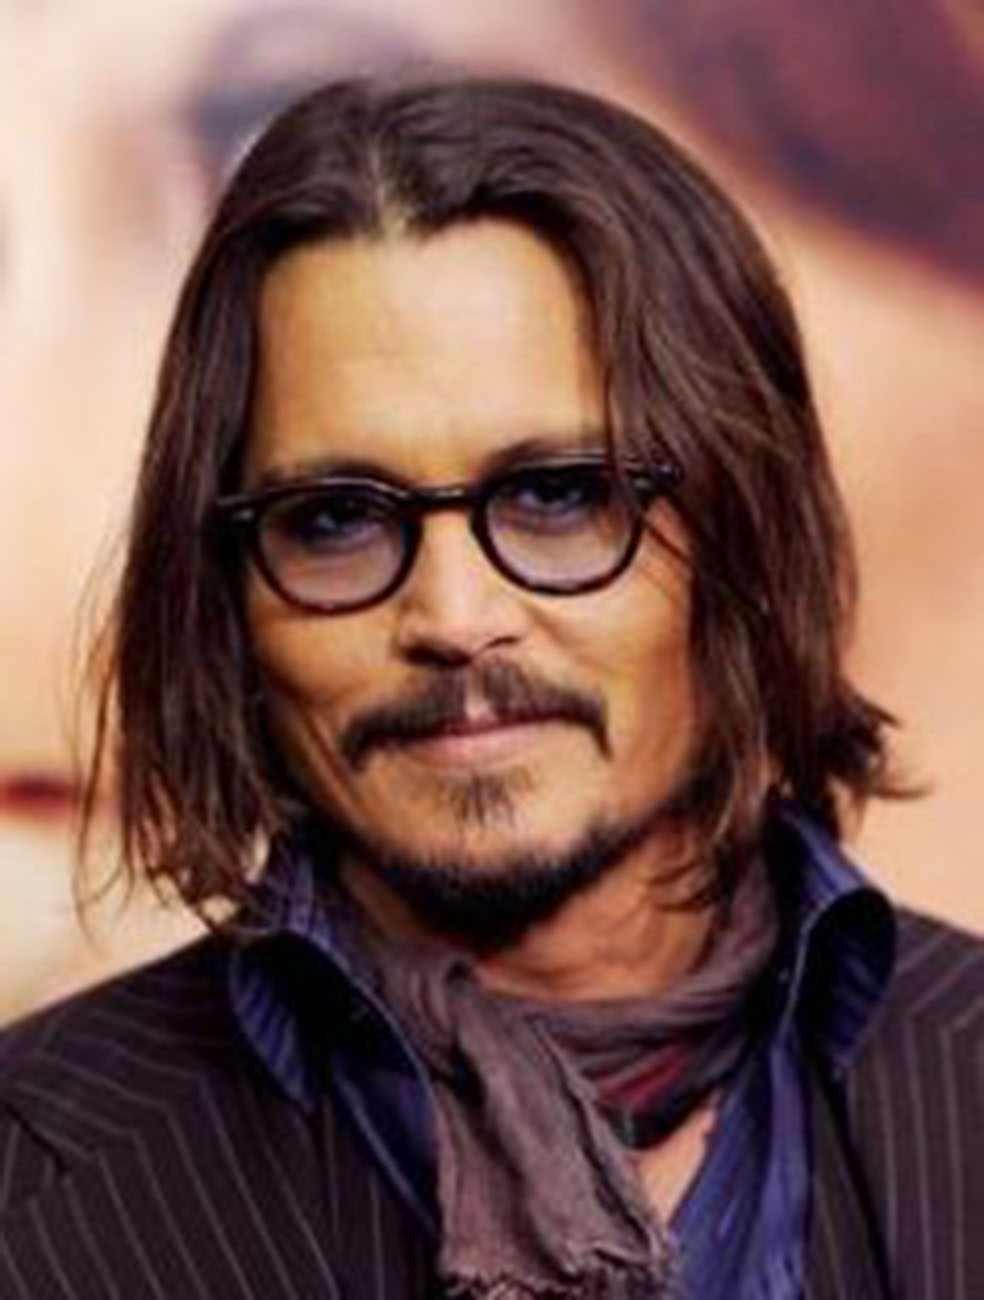 johnny-depp_oliver-peoples-sunglasses_the+spectacle-trolley+square-salt+lake+city--DebaDoTell